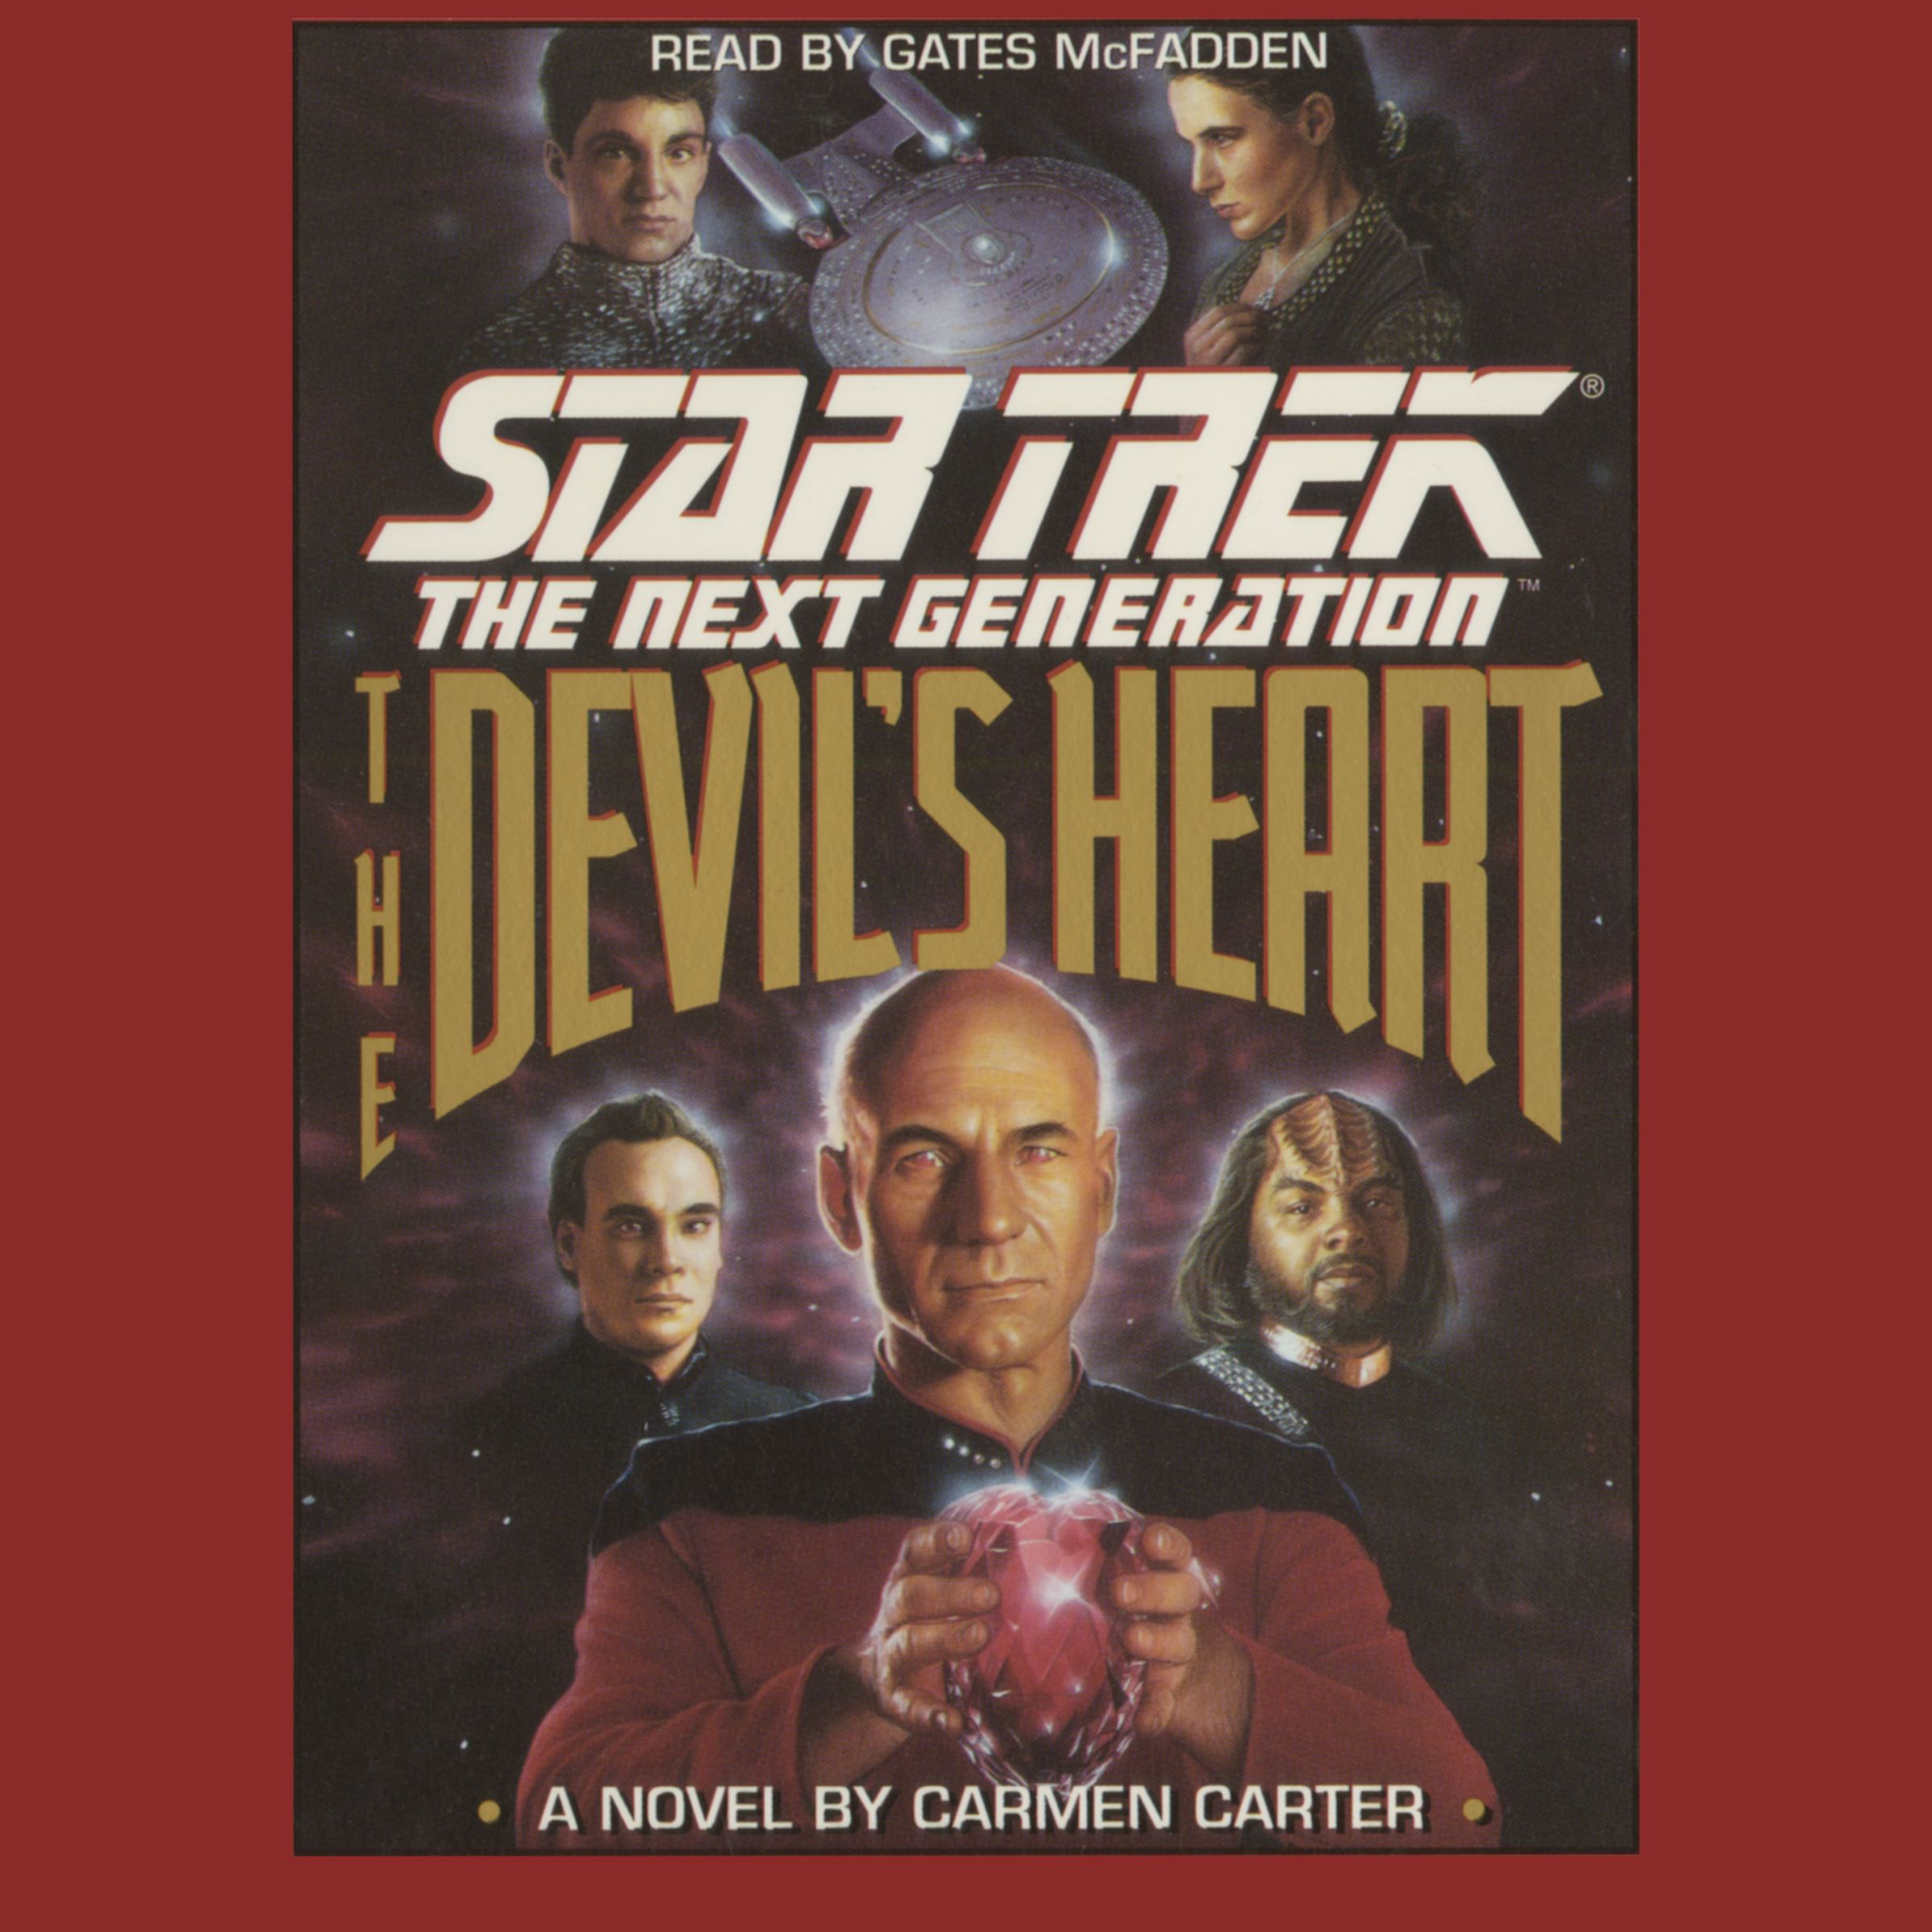 Star-trek-the-next-generation-the-devils-heart-9781442368293_hr